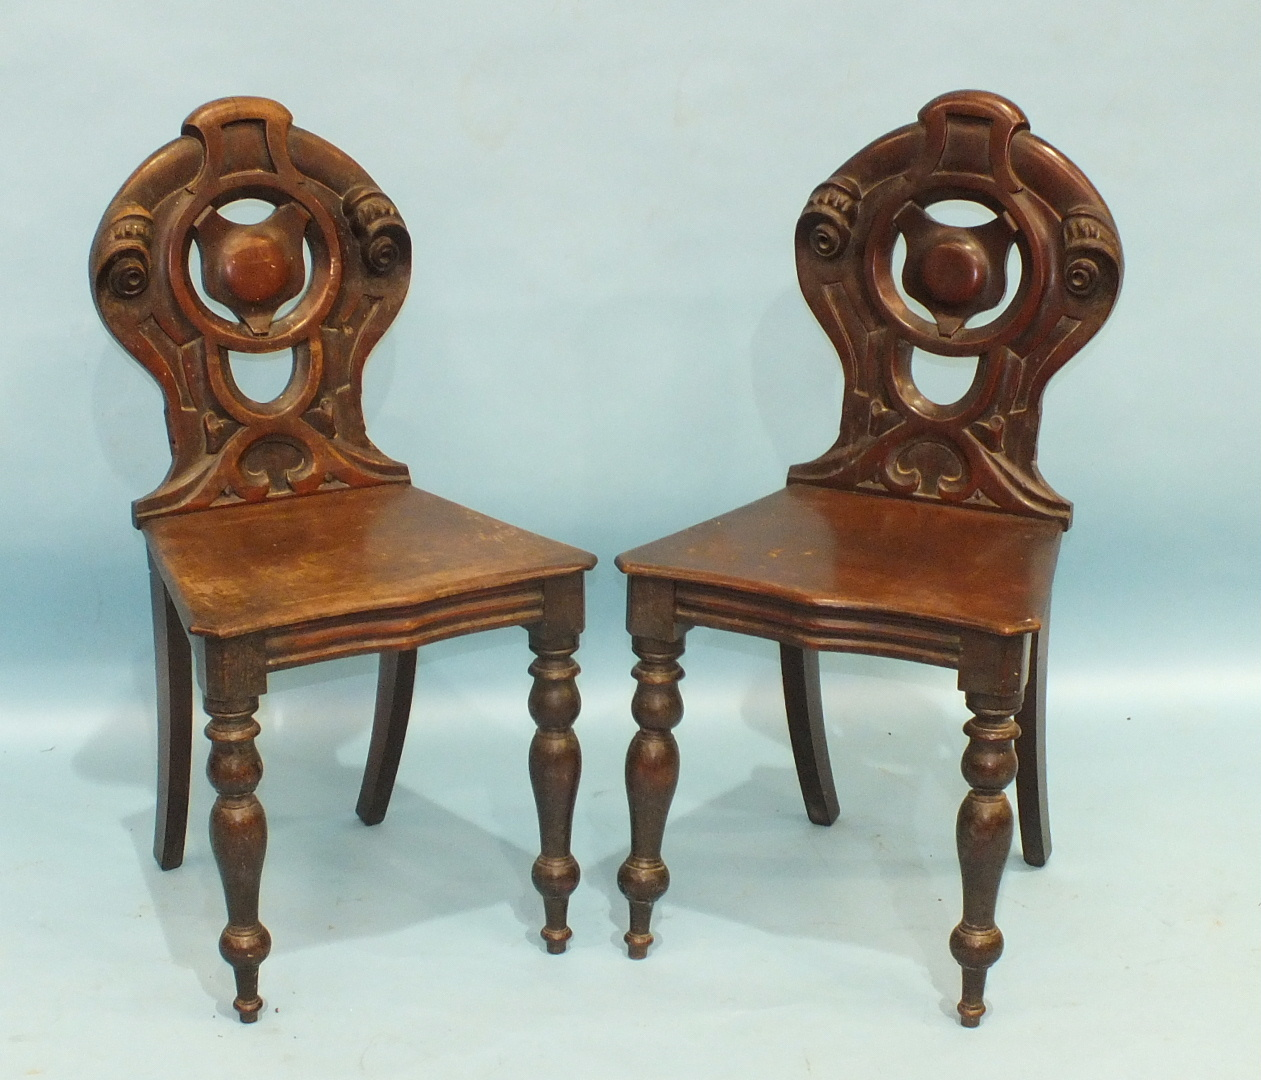 Lot 64 - A pair of mahogany hall chairs with pierced backs and shaped solid seats, on turned front legs, (